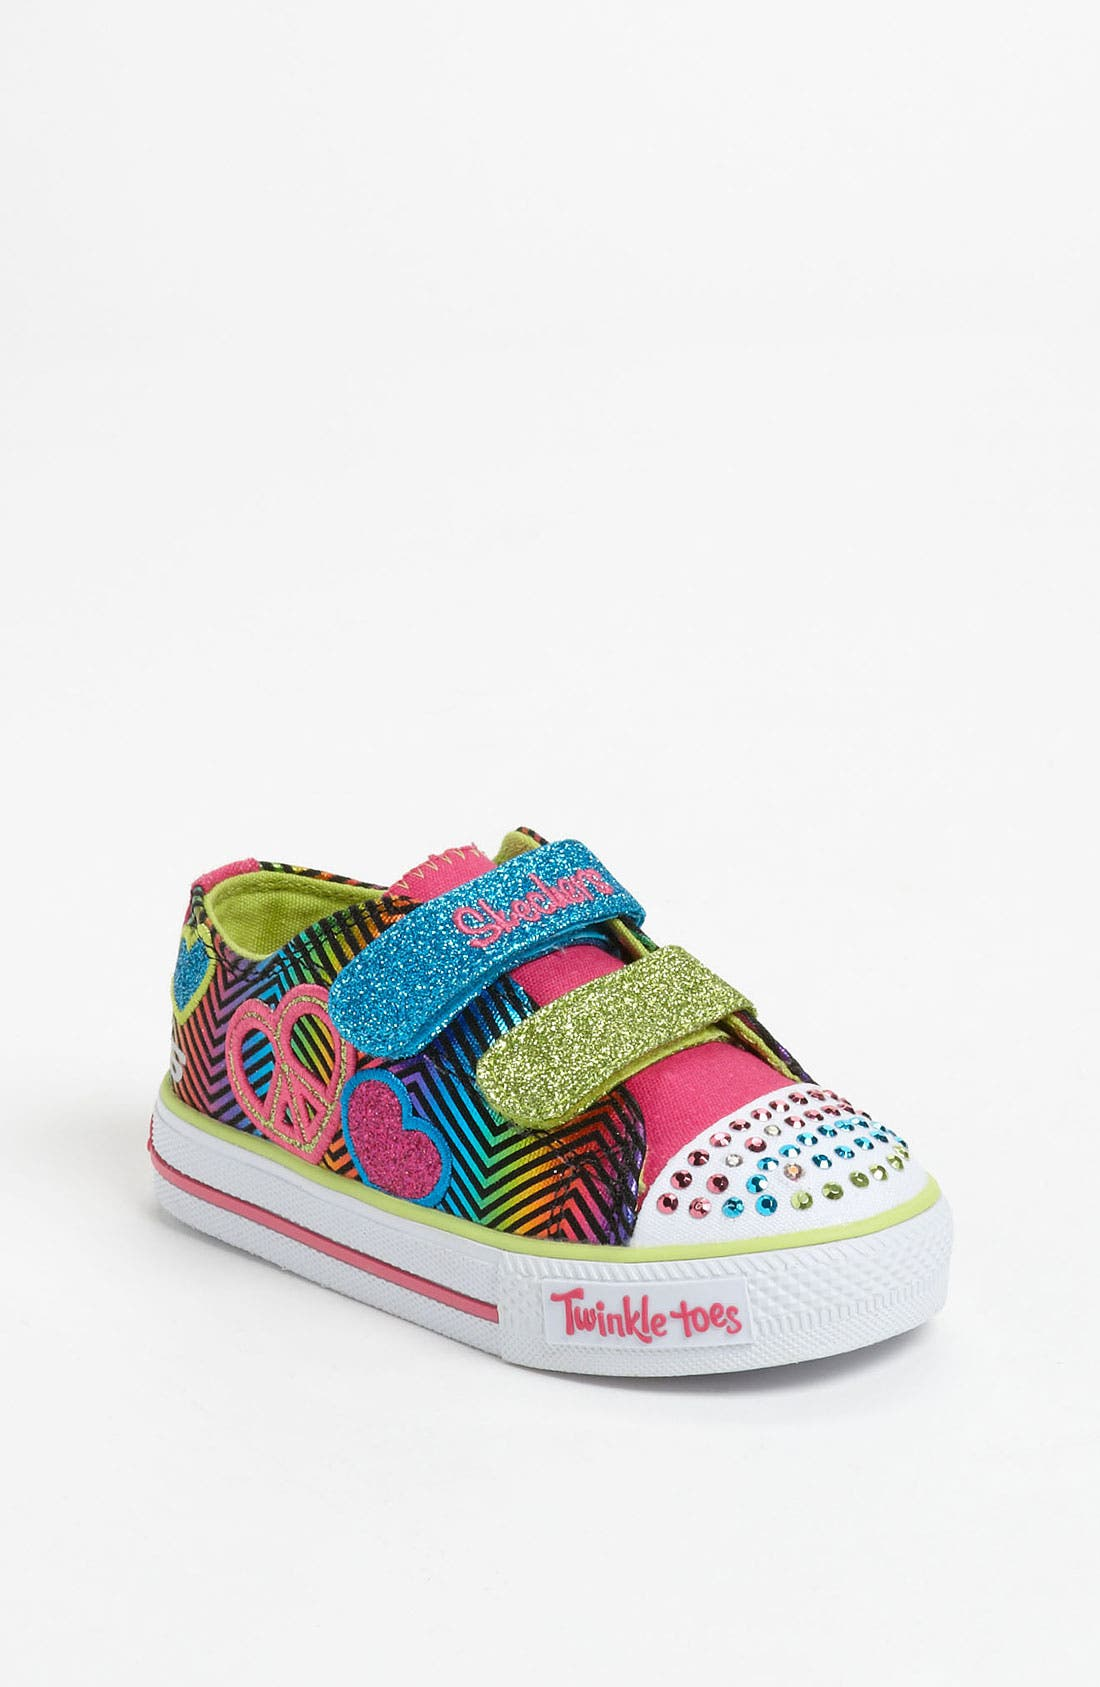 Alternate Image 1 Selected - SKECHERS 'Shuffles - Baby Luv' Light Up Sneaker (Walker & Toddler)